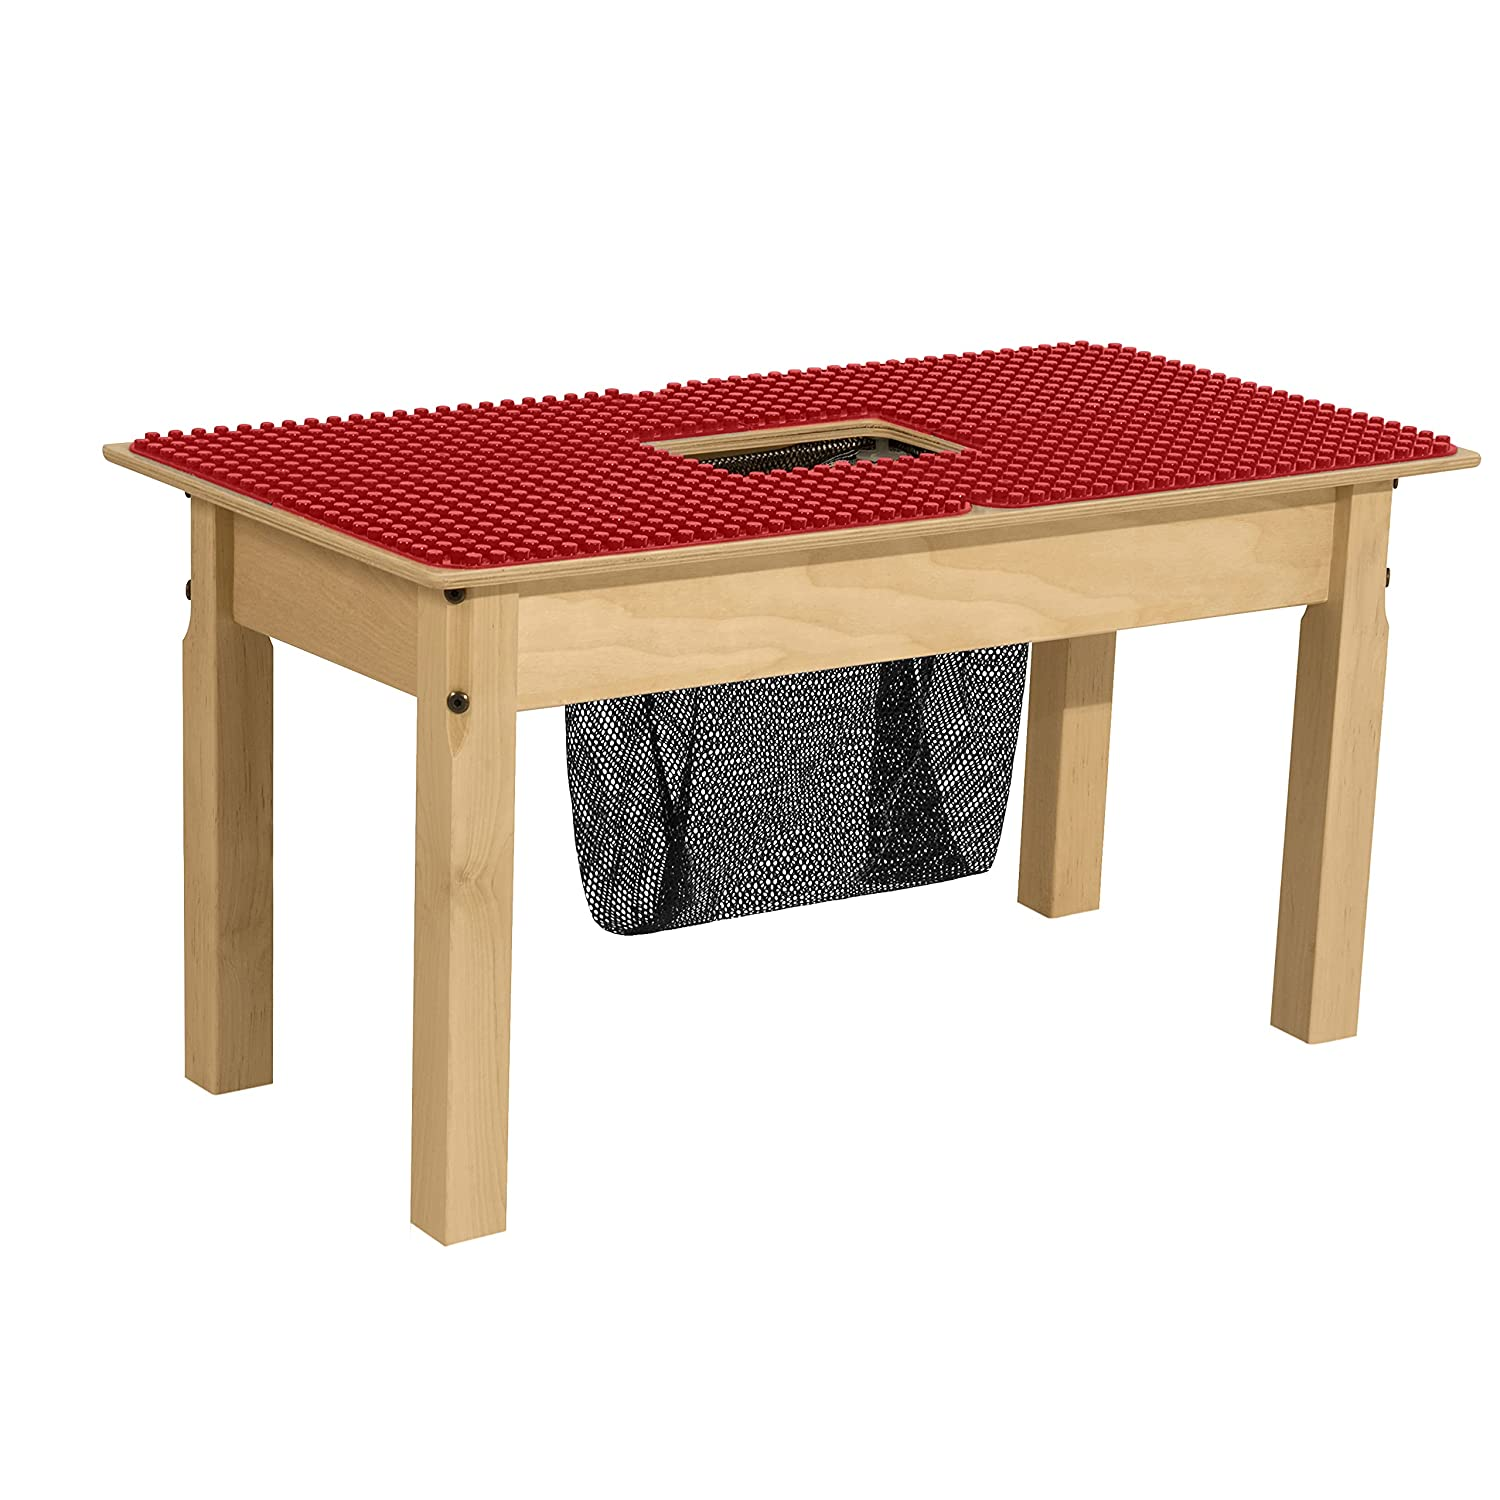 Wood Designs Kids Wooden Rectangular Duplo Table Dealing full price reduction Play Limited price sale 15